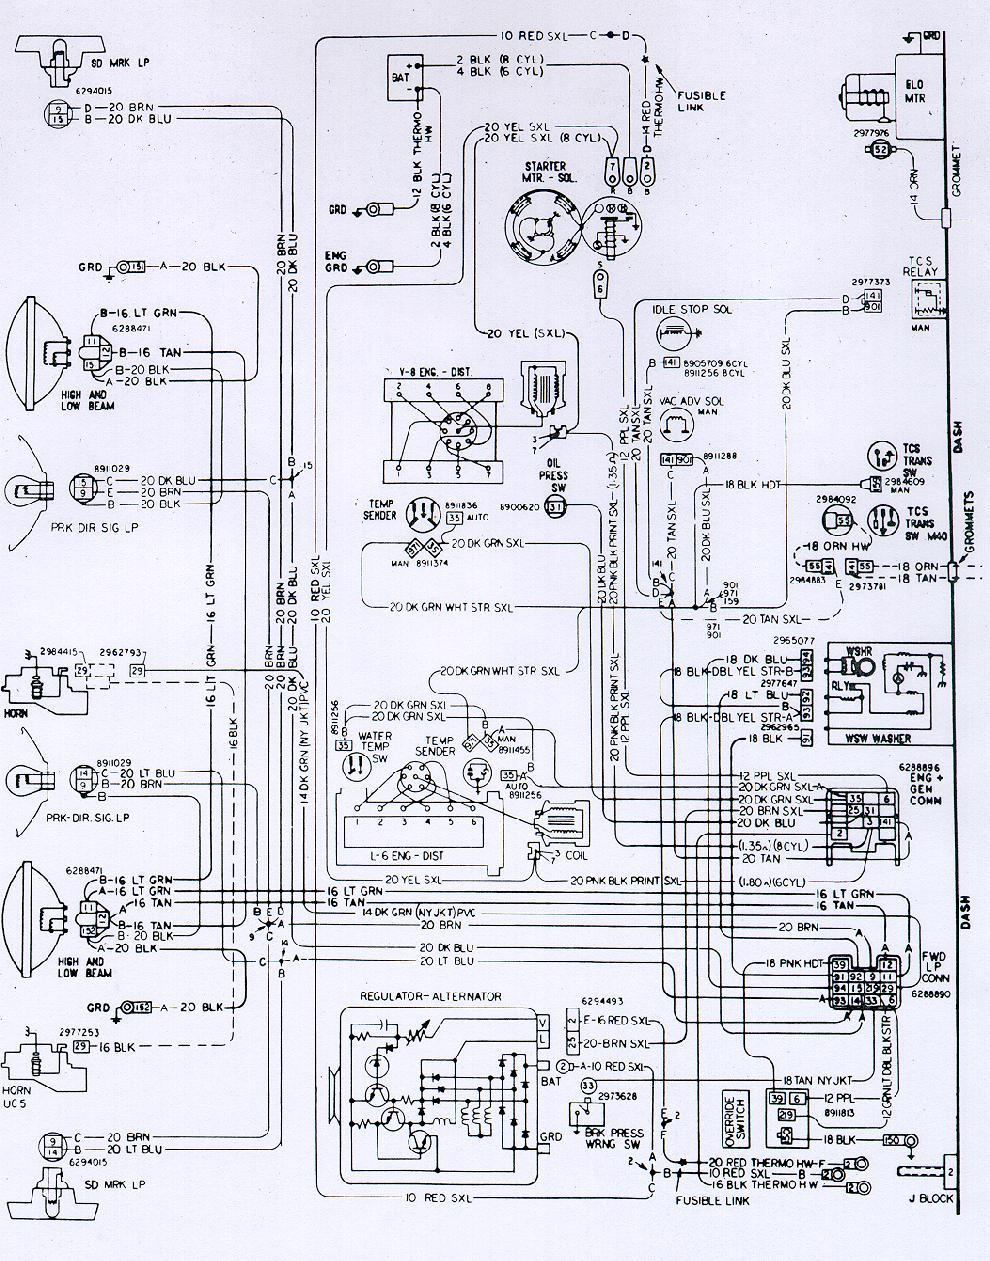 hight resolution of 1967 camaro headlight wiring to fuse box diagram wiring schematic rh aikidorodez com